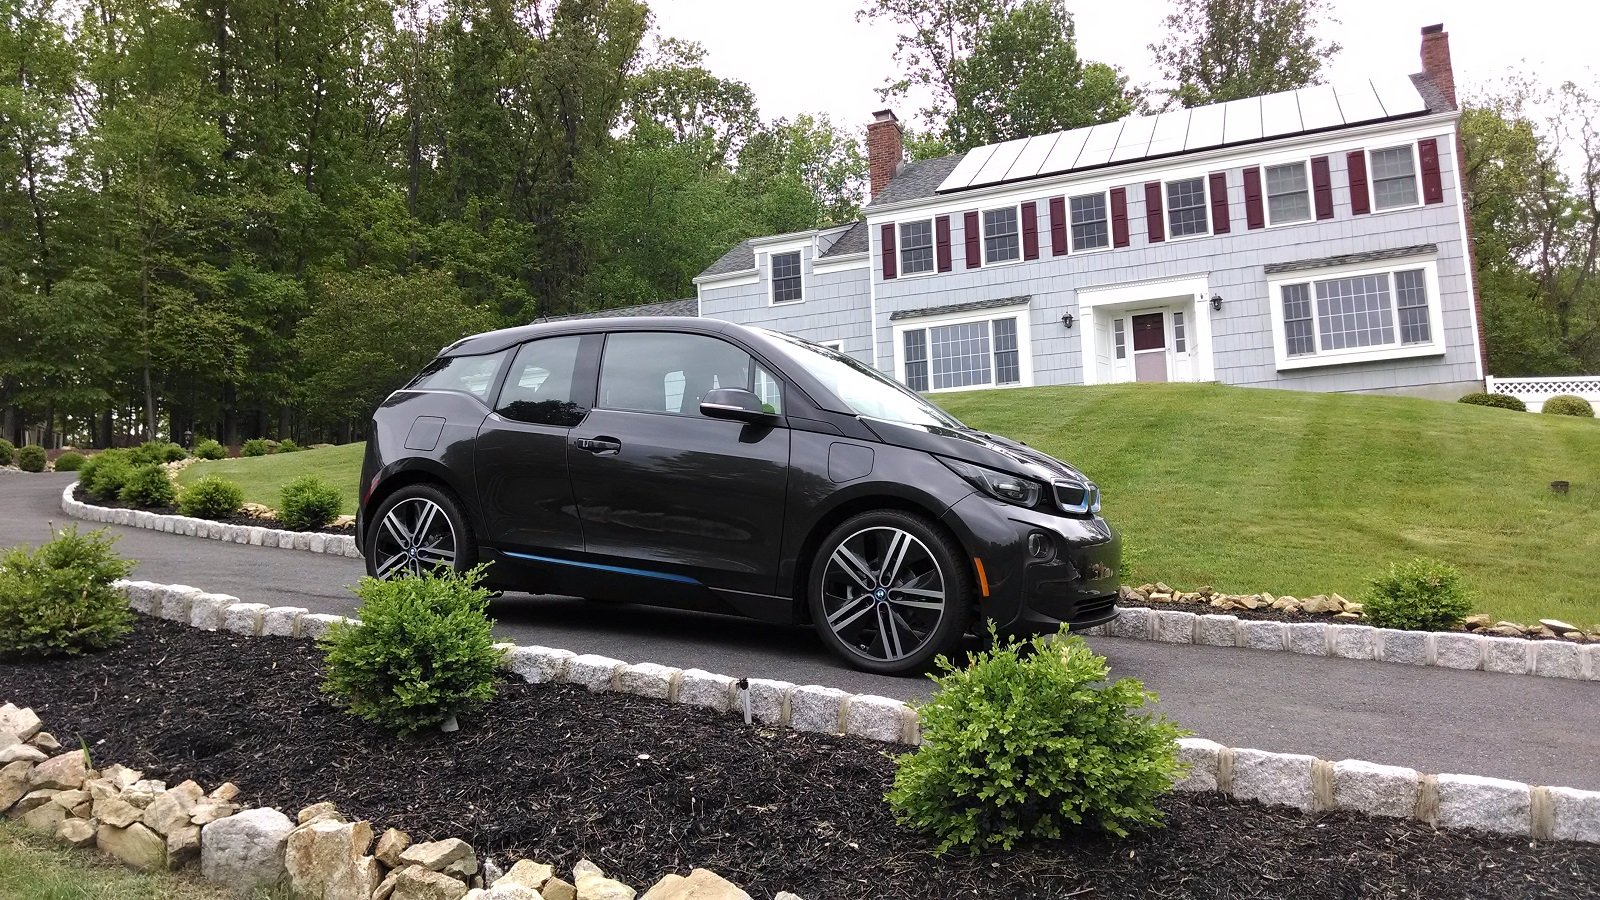 2014 bmw i3 rex range extended electric car drive report. Black Bedroom Furniture Sets. Home Design Ideas